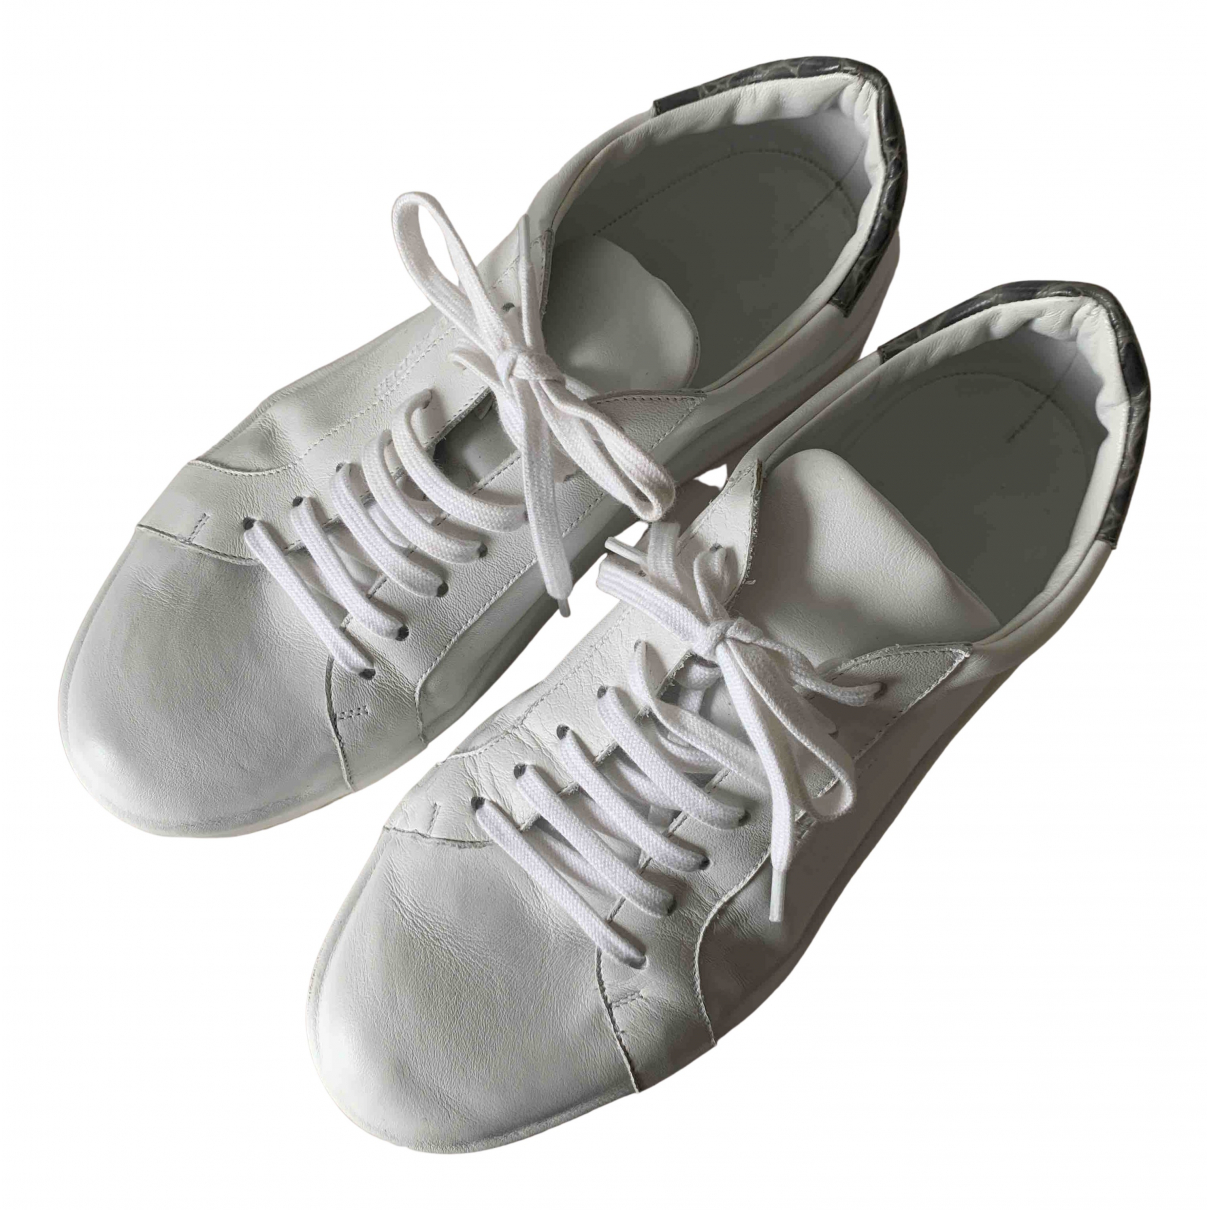 Jil Sander N White Leather Trainers for Women 38 IT